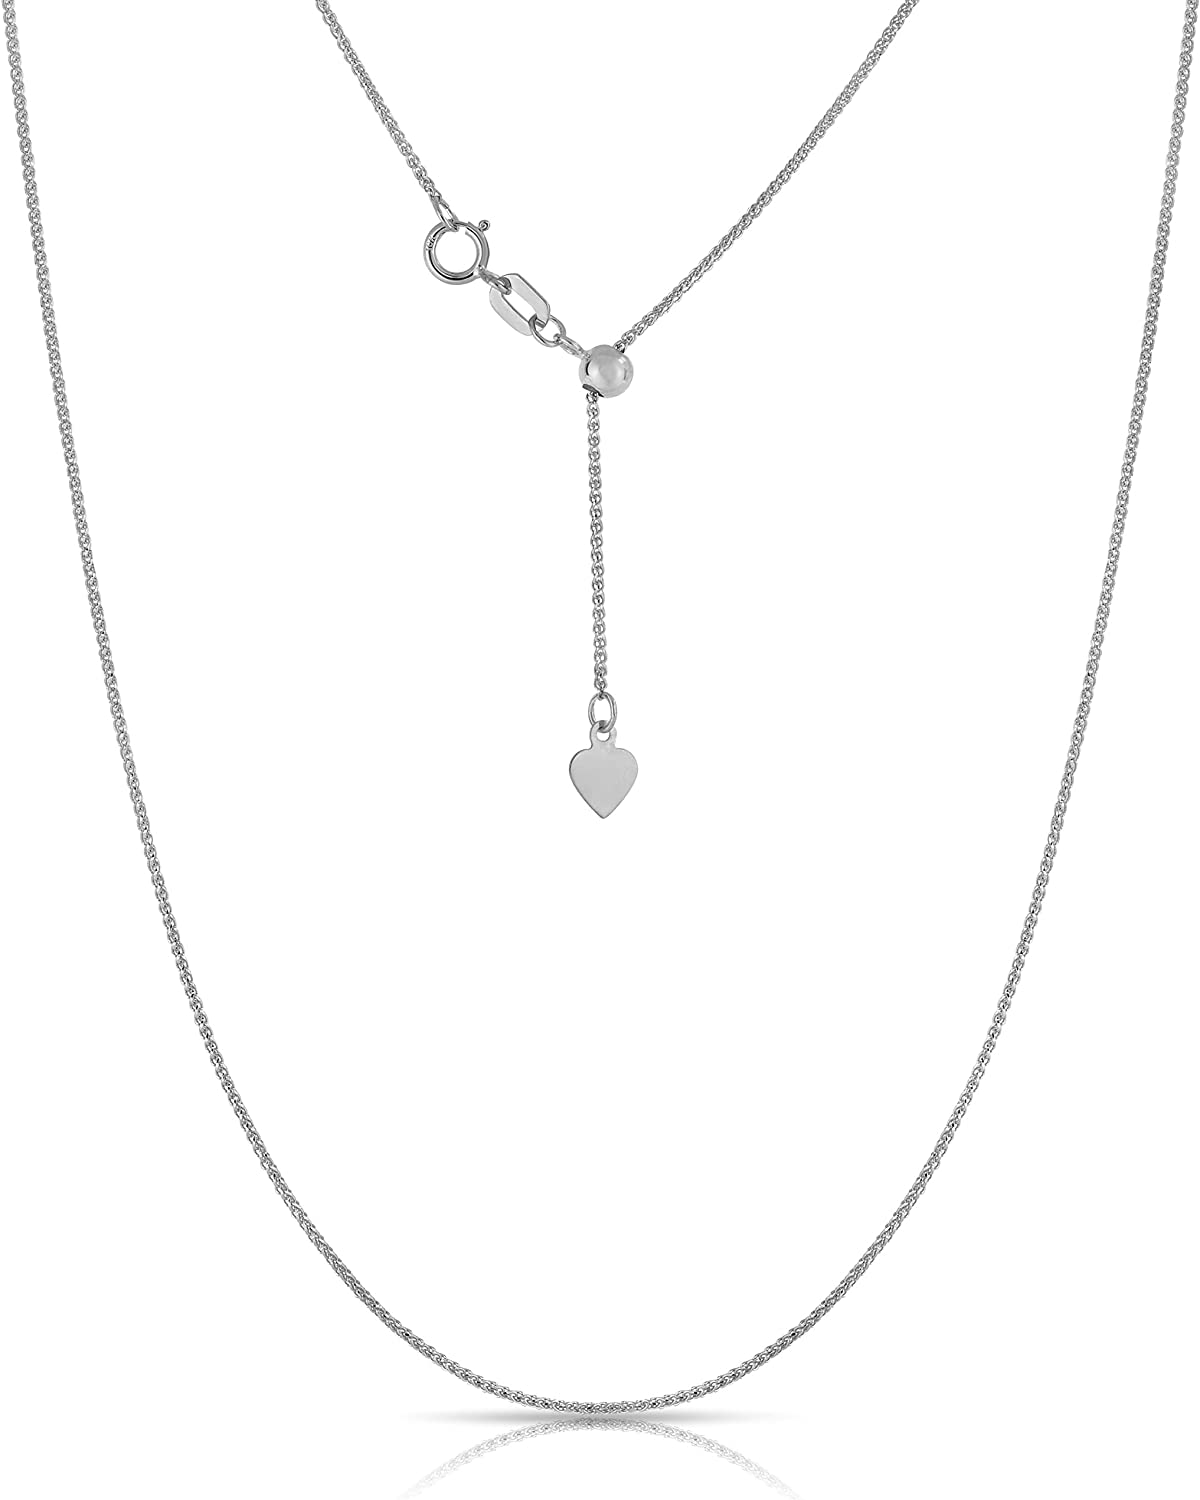 Floreo 10K Fine Gold Adjustable Wheat Chain Necklace, 24 Inch